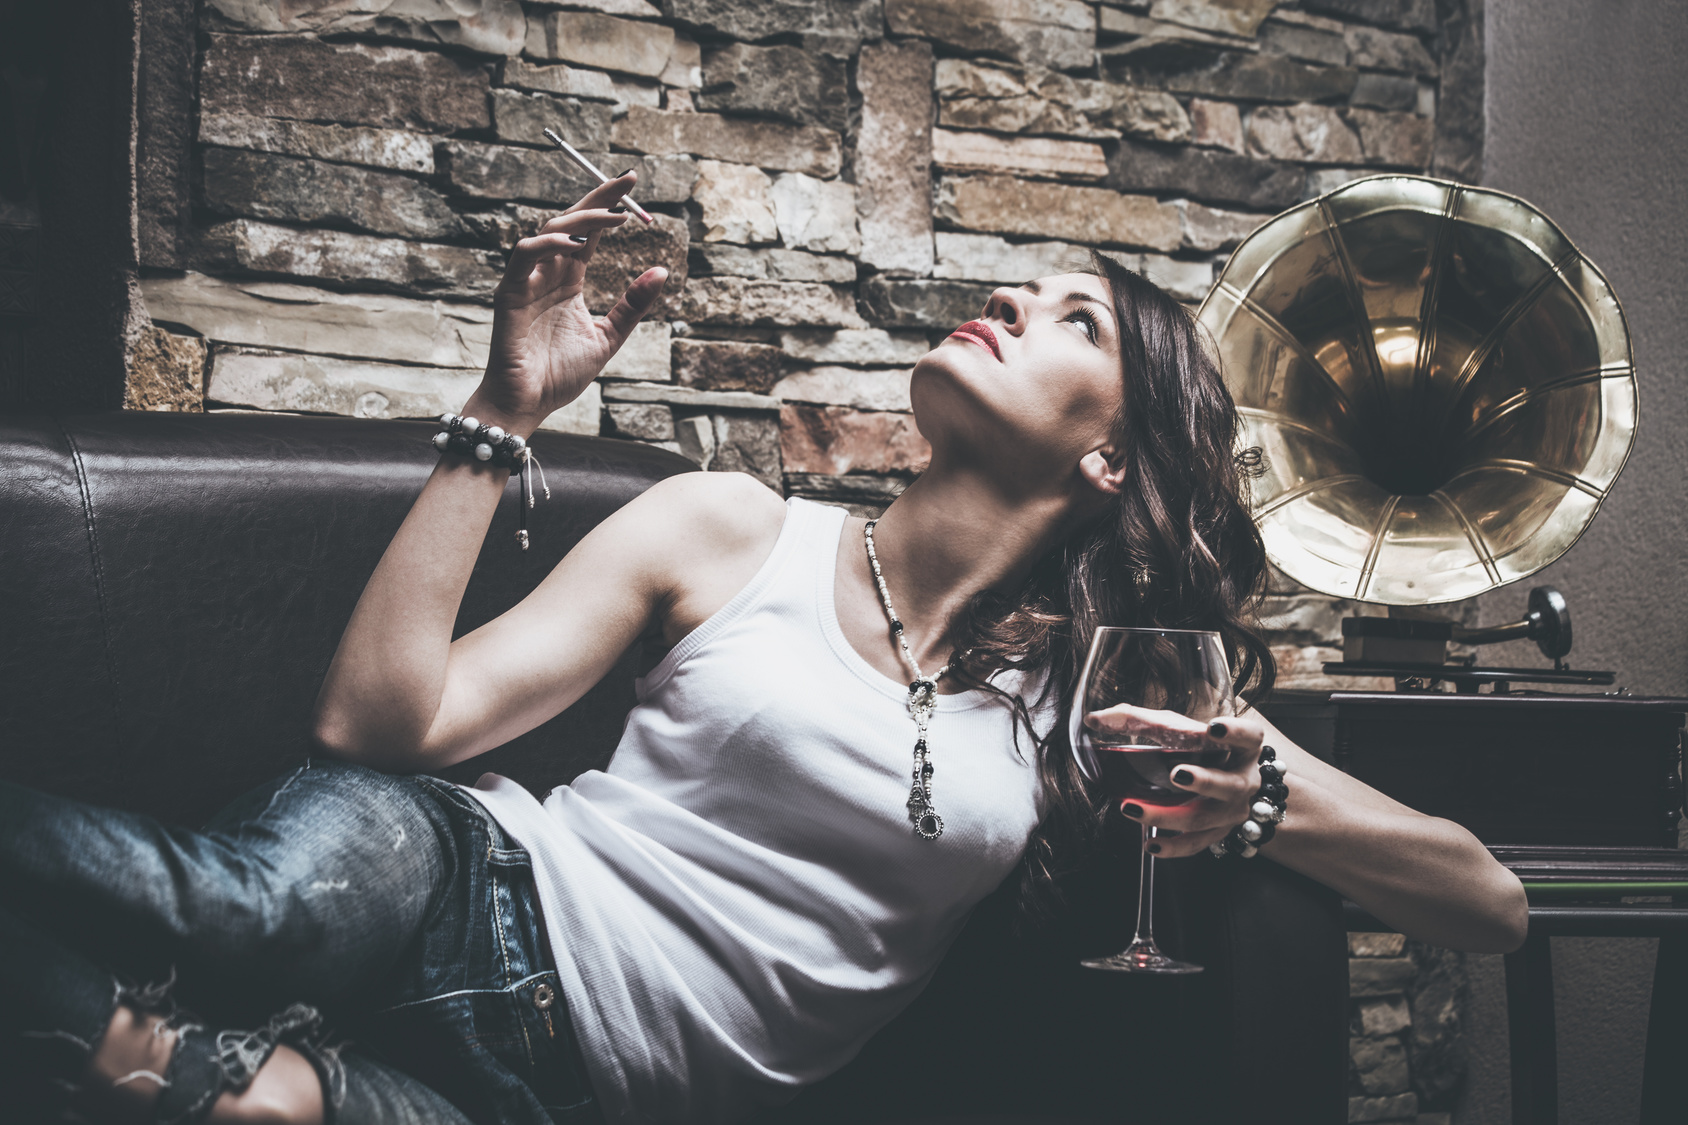 woman with glass of red wine and cigarette, wearing blue jeans and white t-shirt, lie on leather couch, behin her is old gramophone, indoor shot